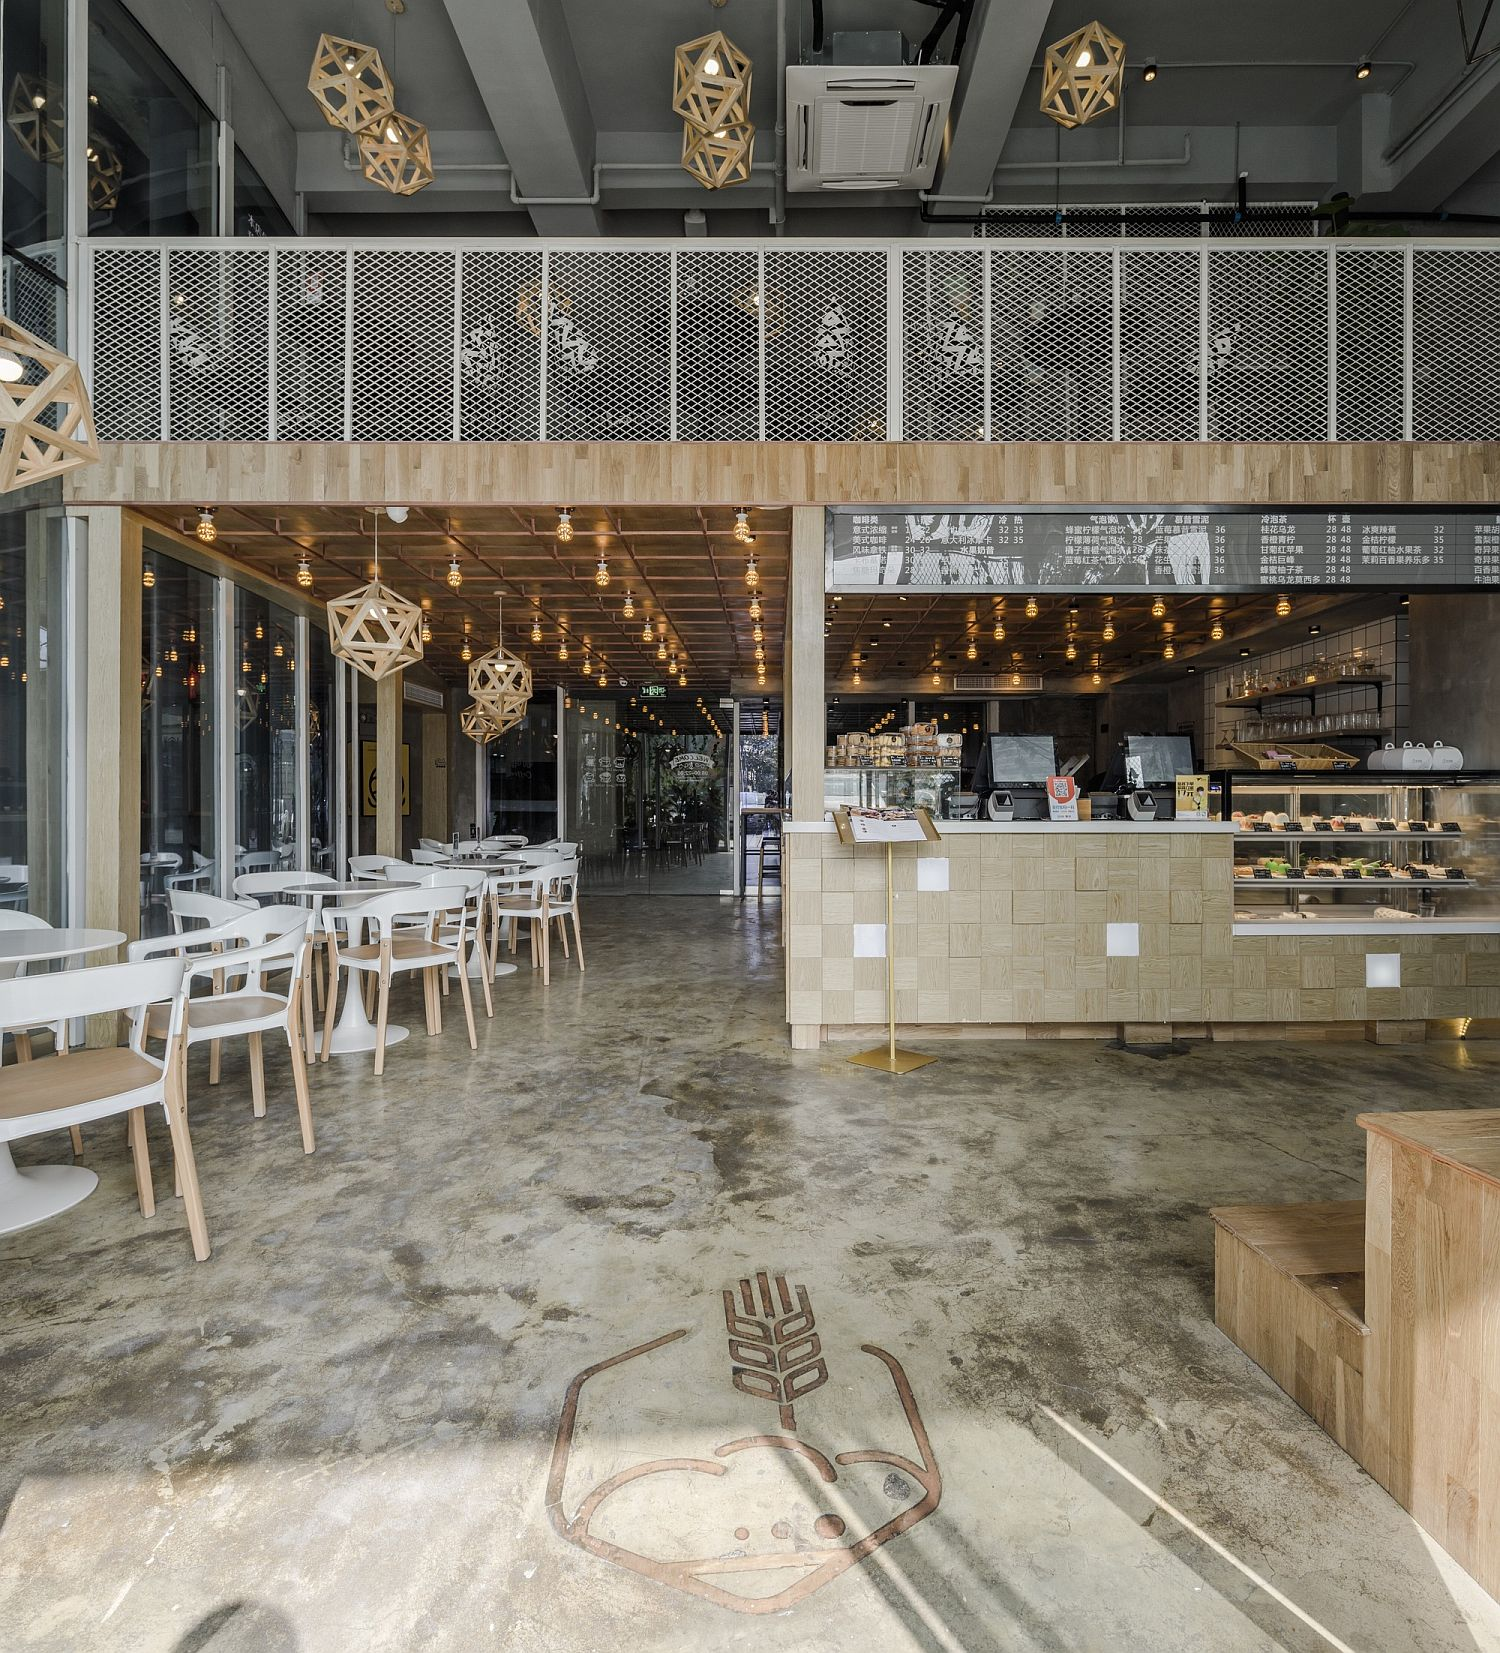 Multi-level-restaurant-in-China-with-a-modern-industrial-style